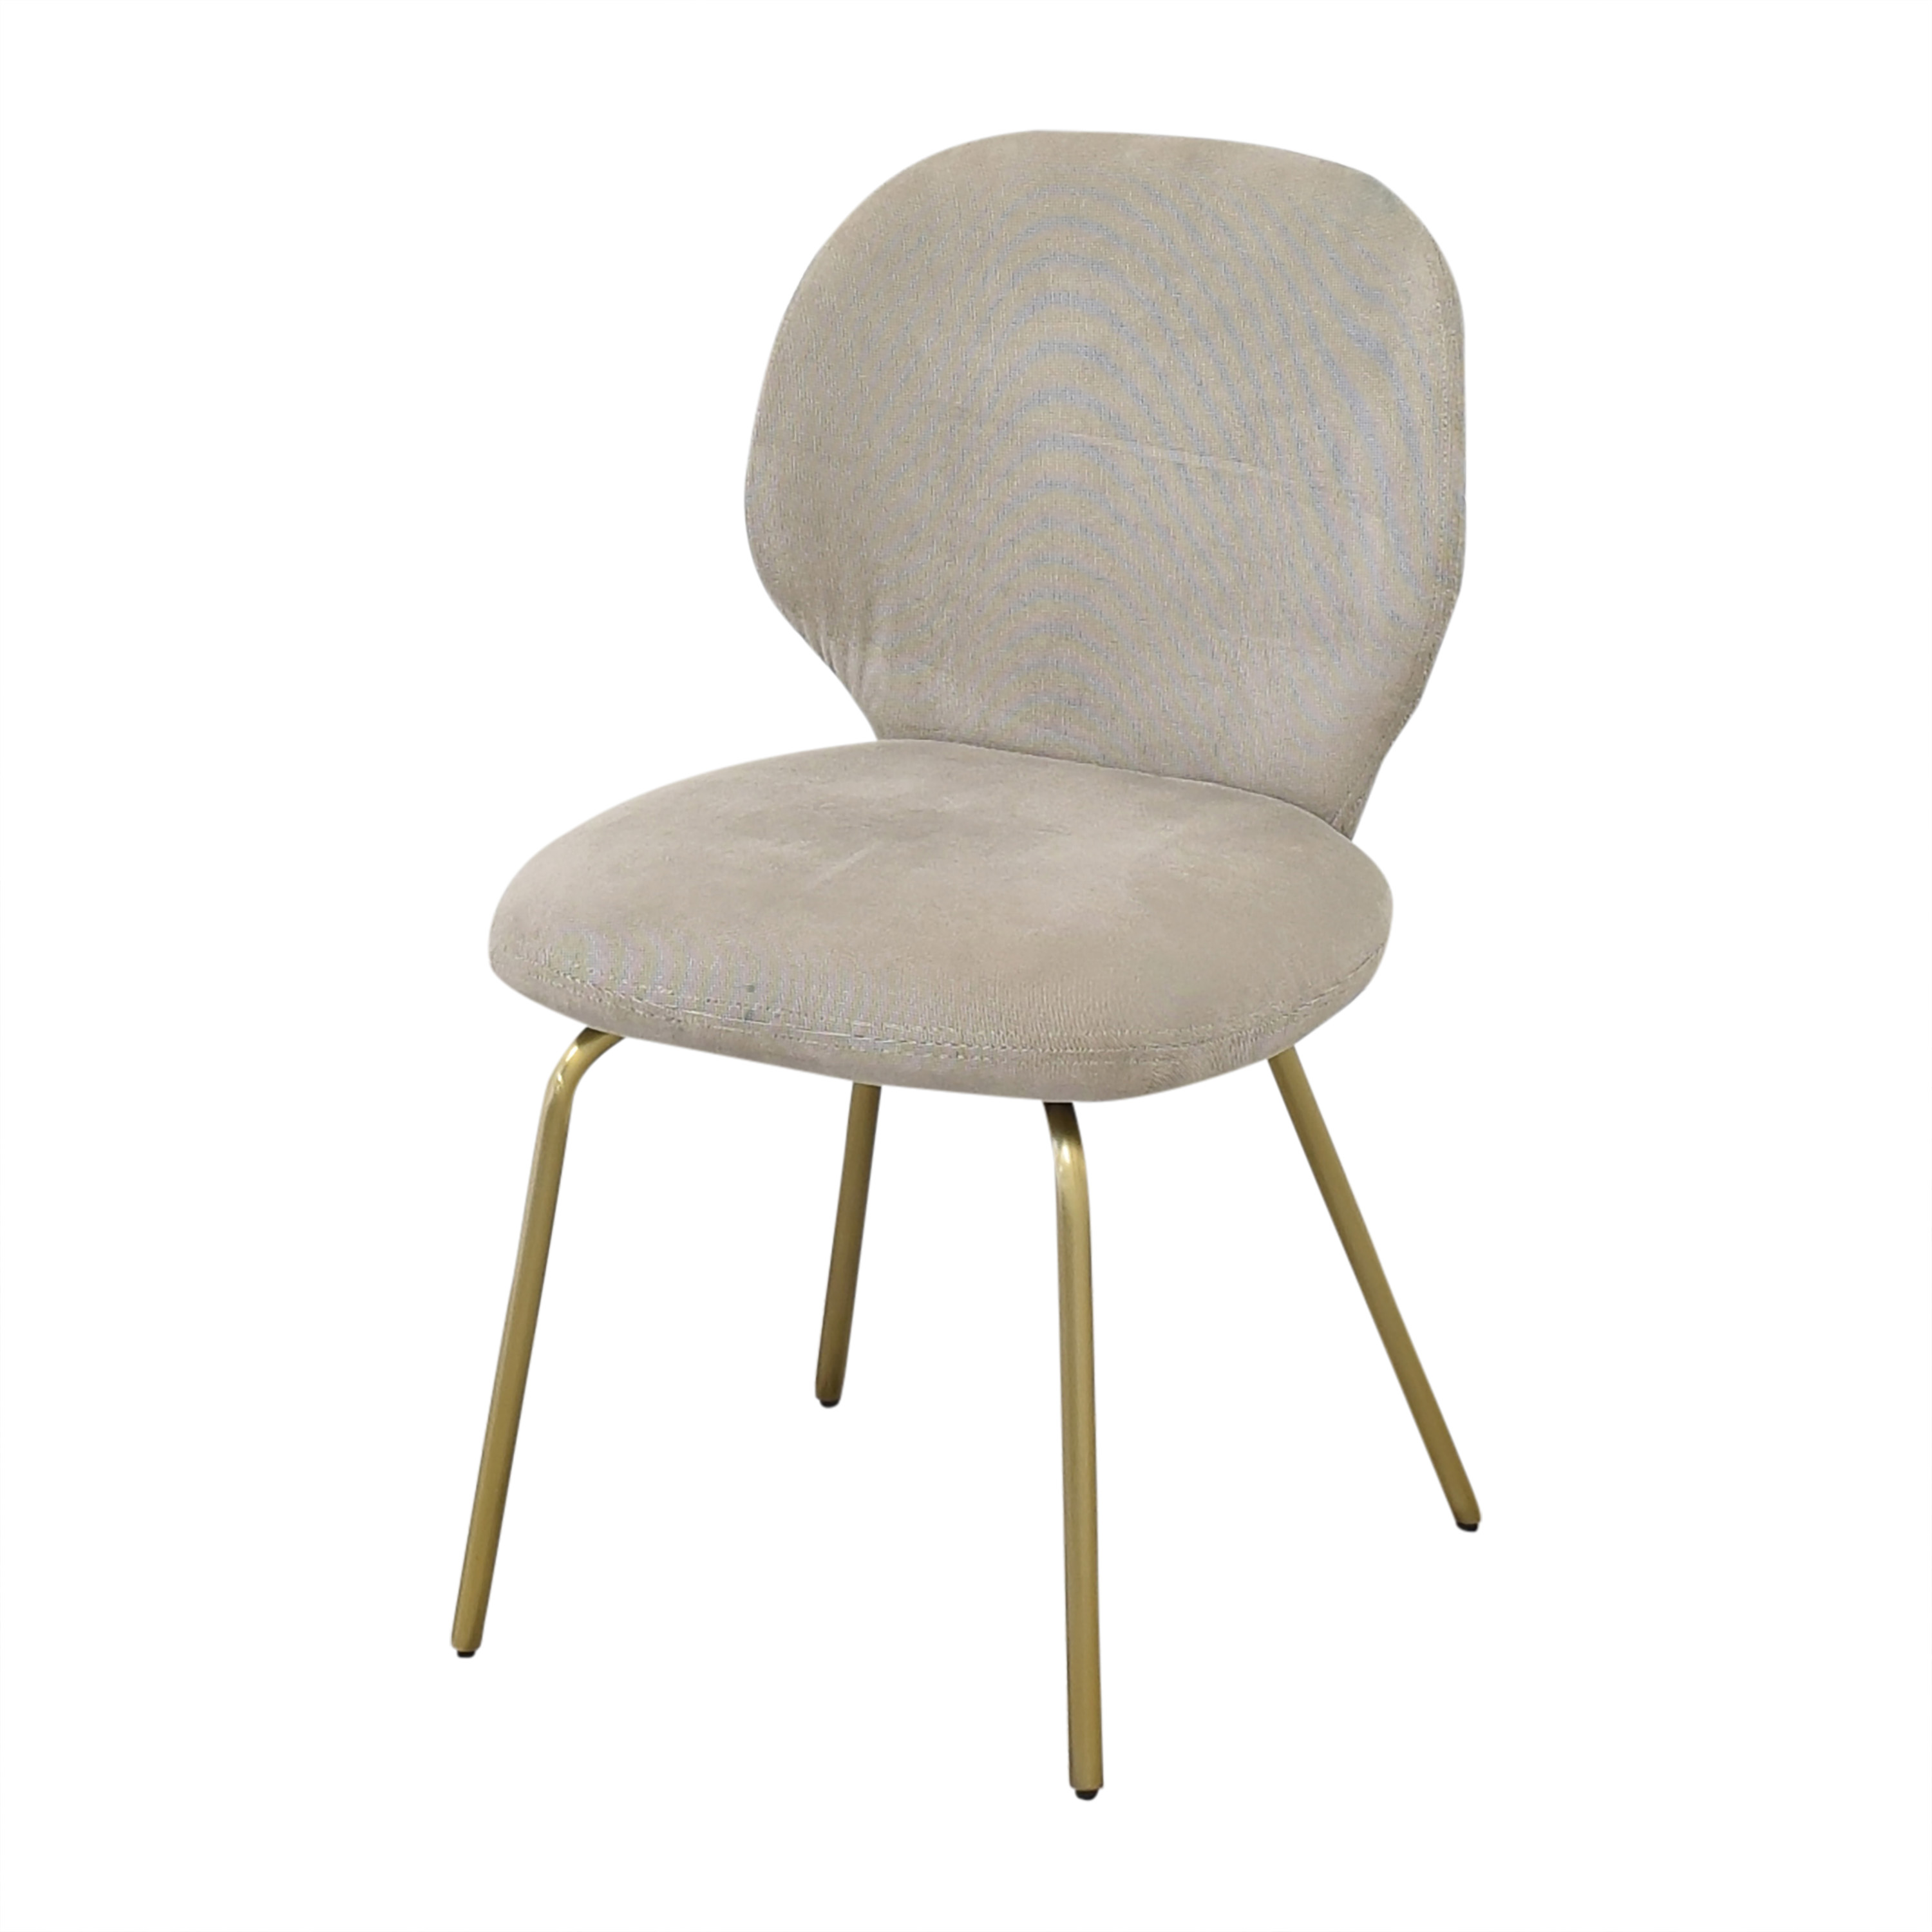 Interior Define Interior Define Upholstered Dining Chairs dimensions